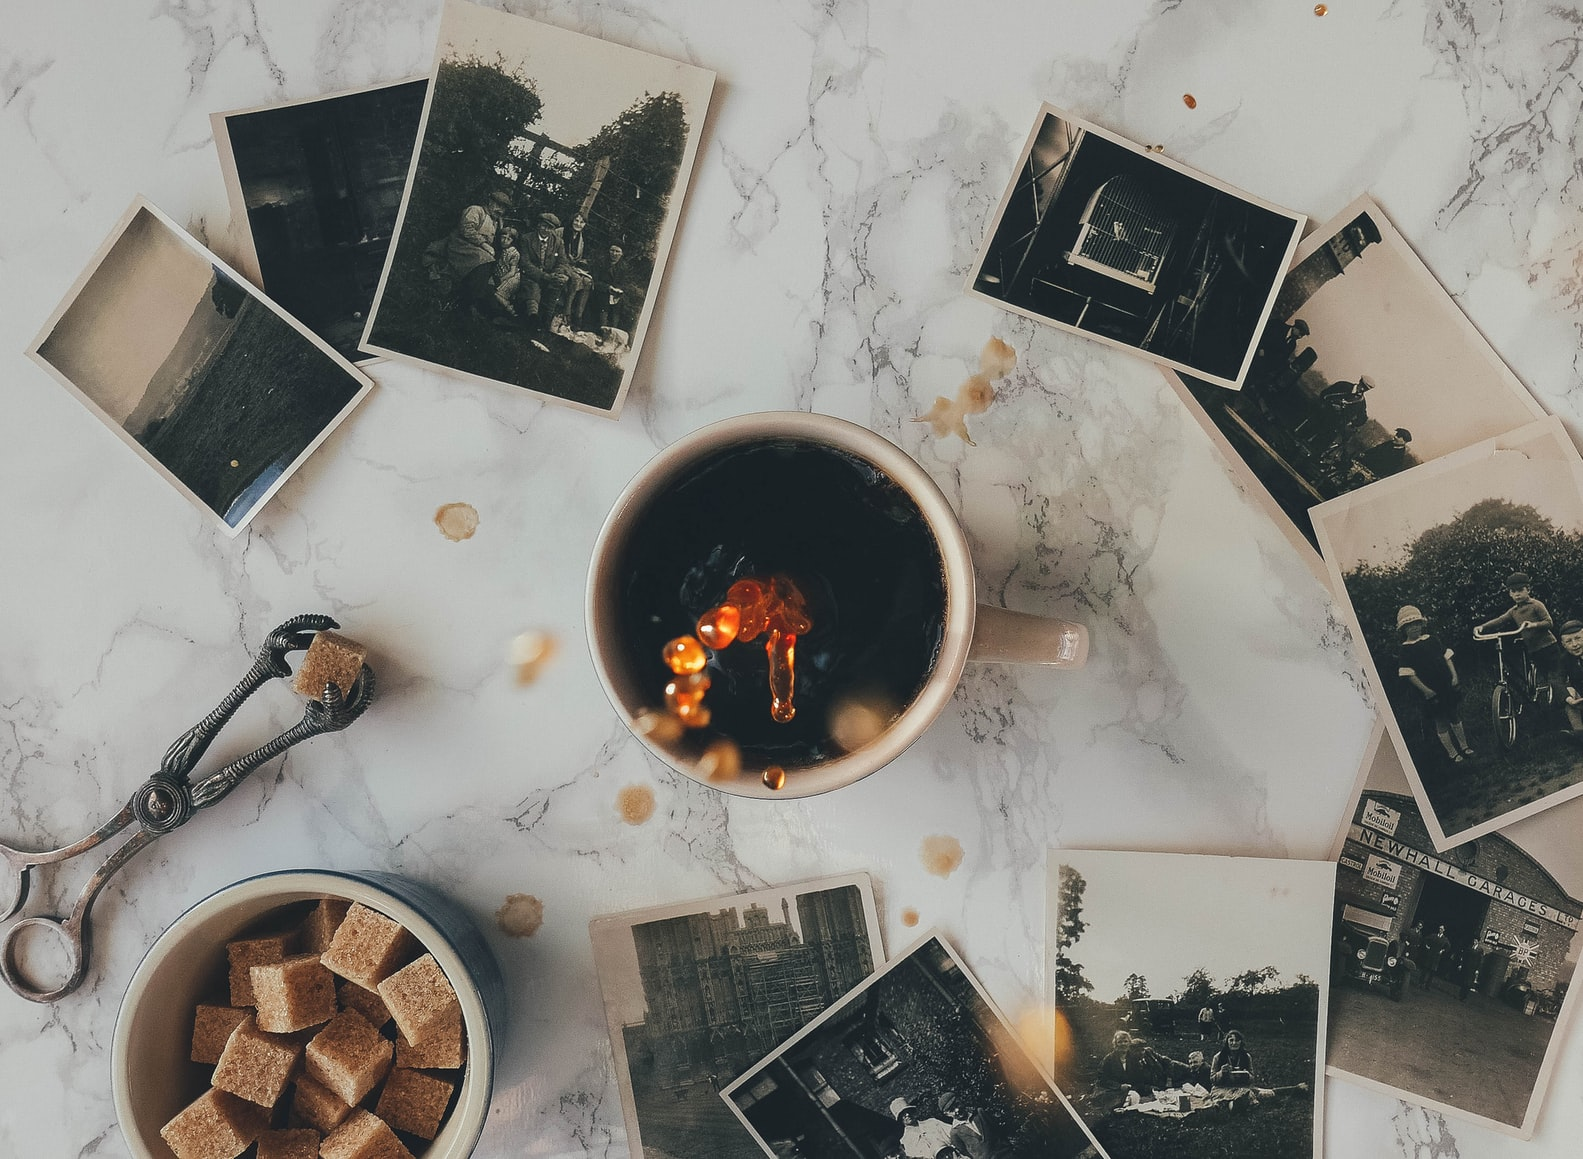 assorted photos on a desk with coffee and sugar